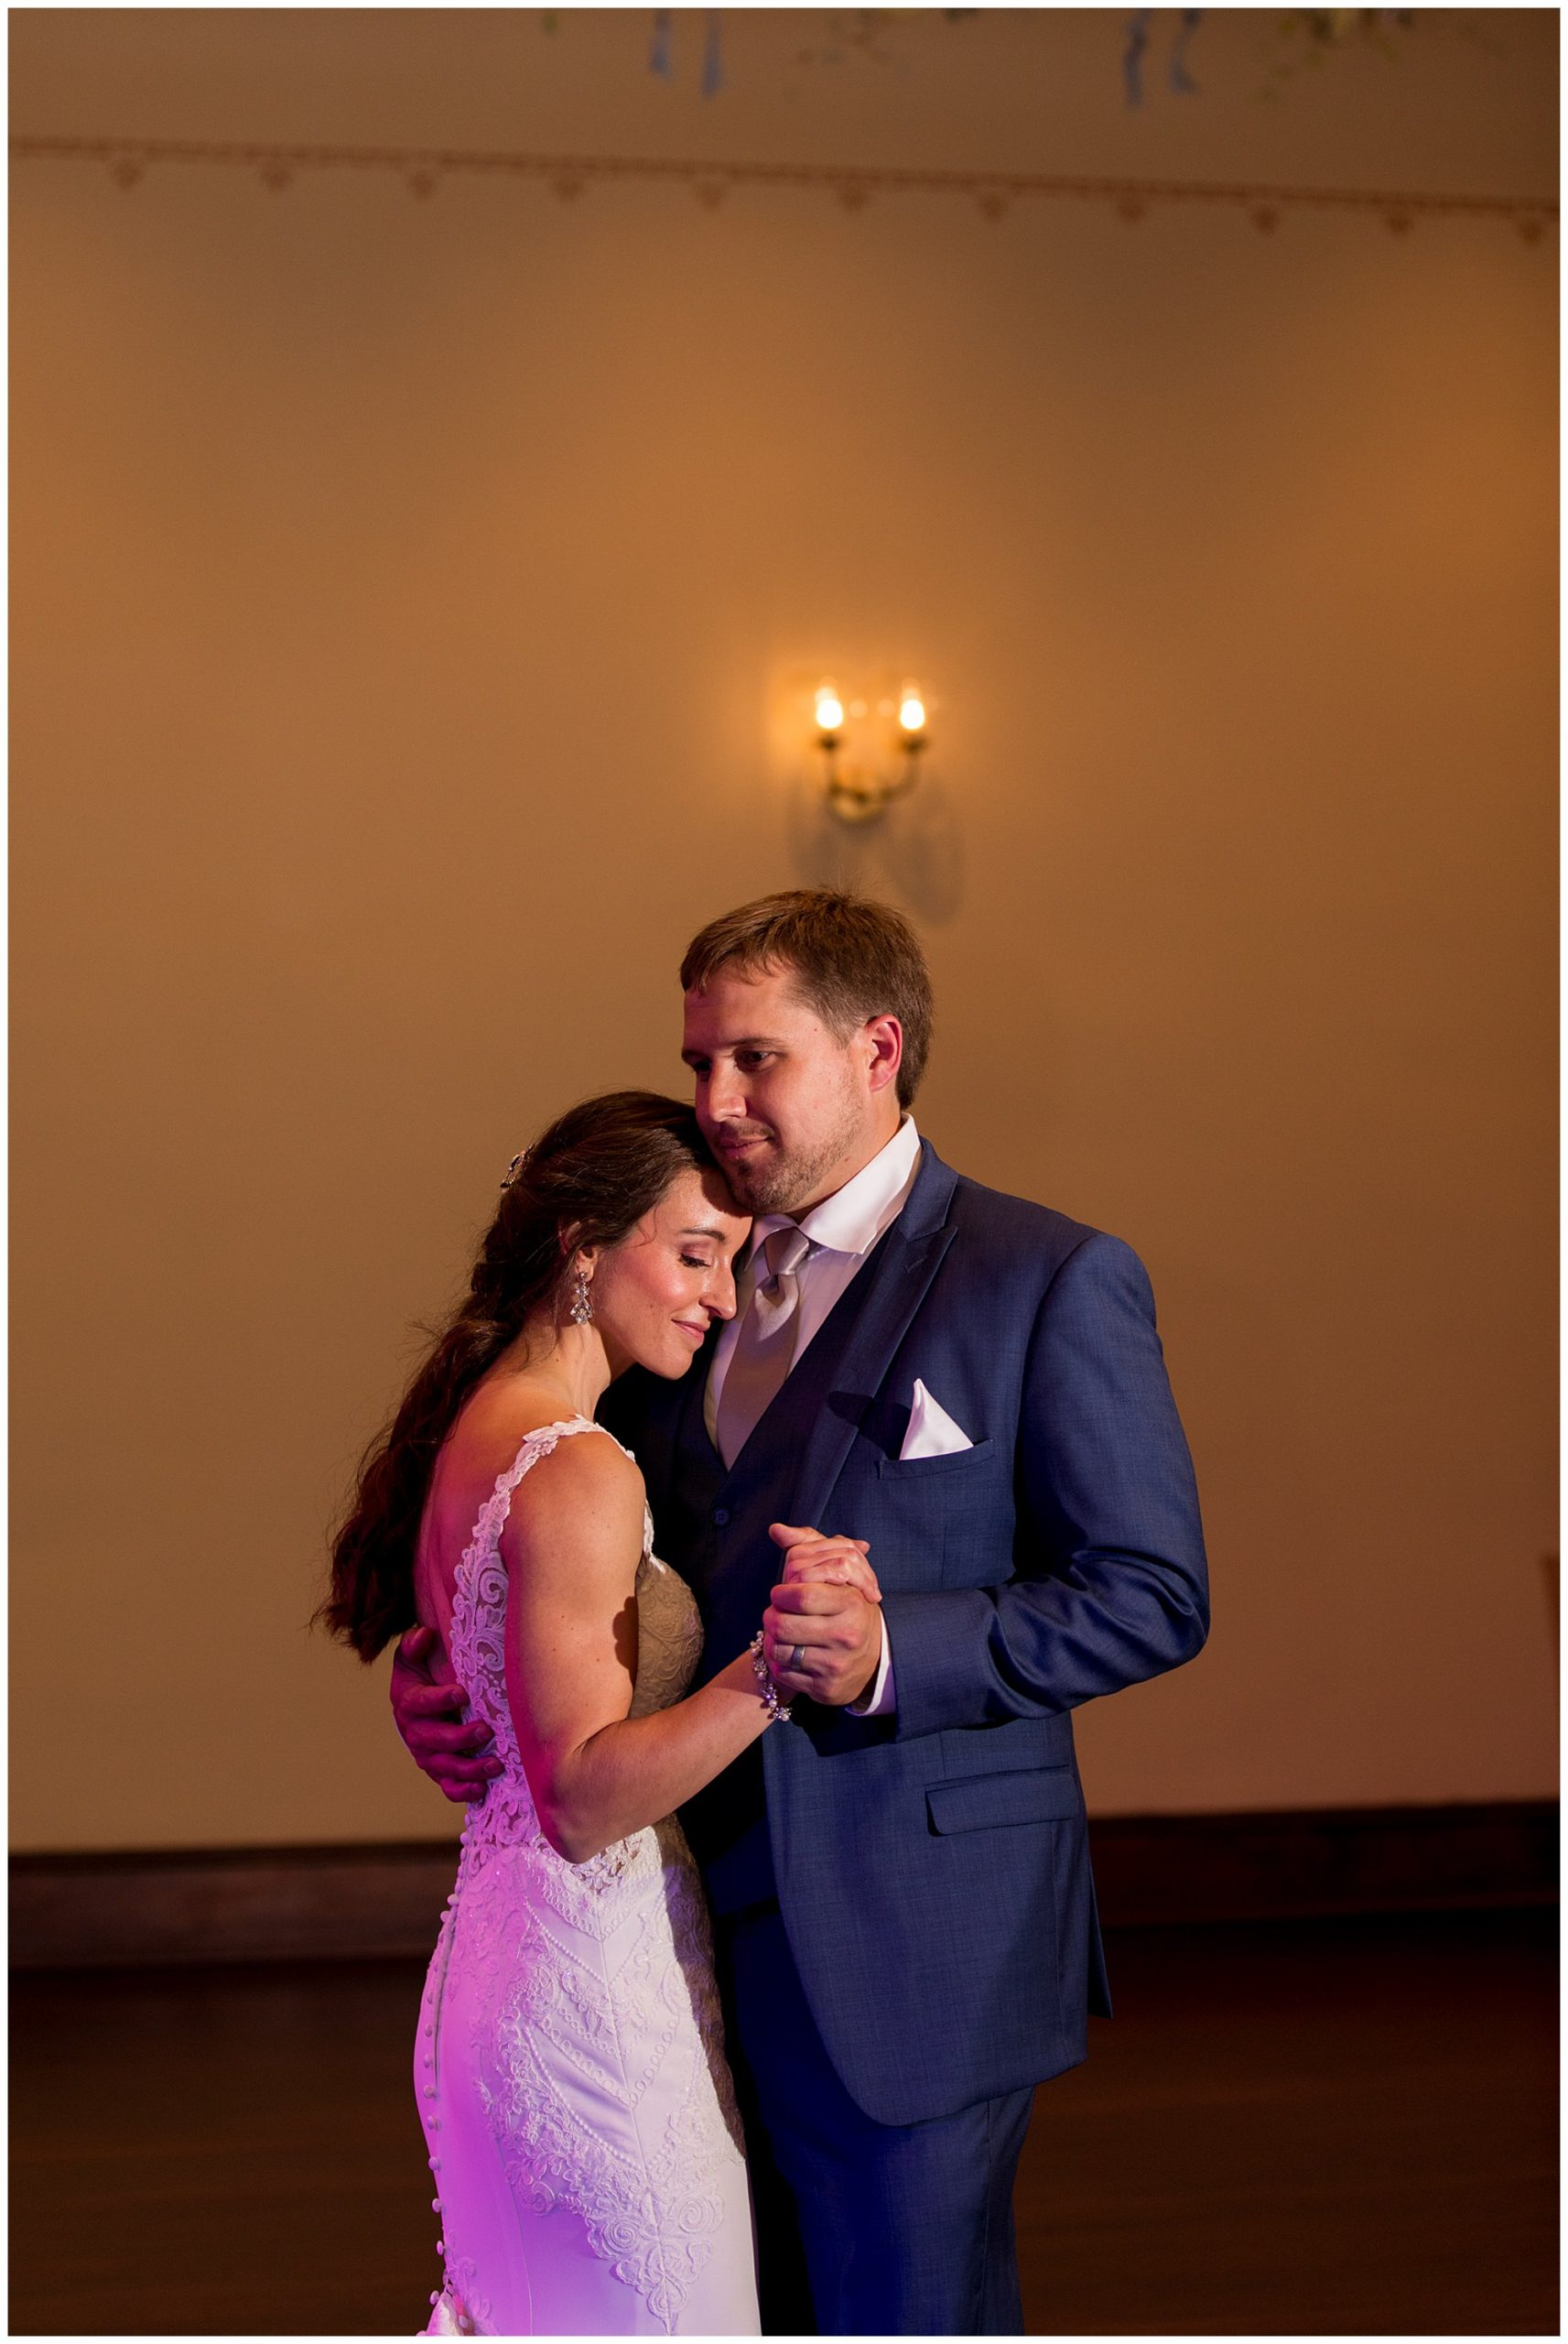 bride and groom first dance in Parkview Ballroom at Eagles Theatre wedding reception